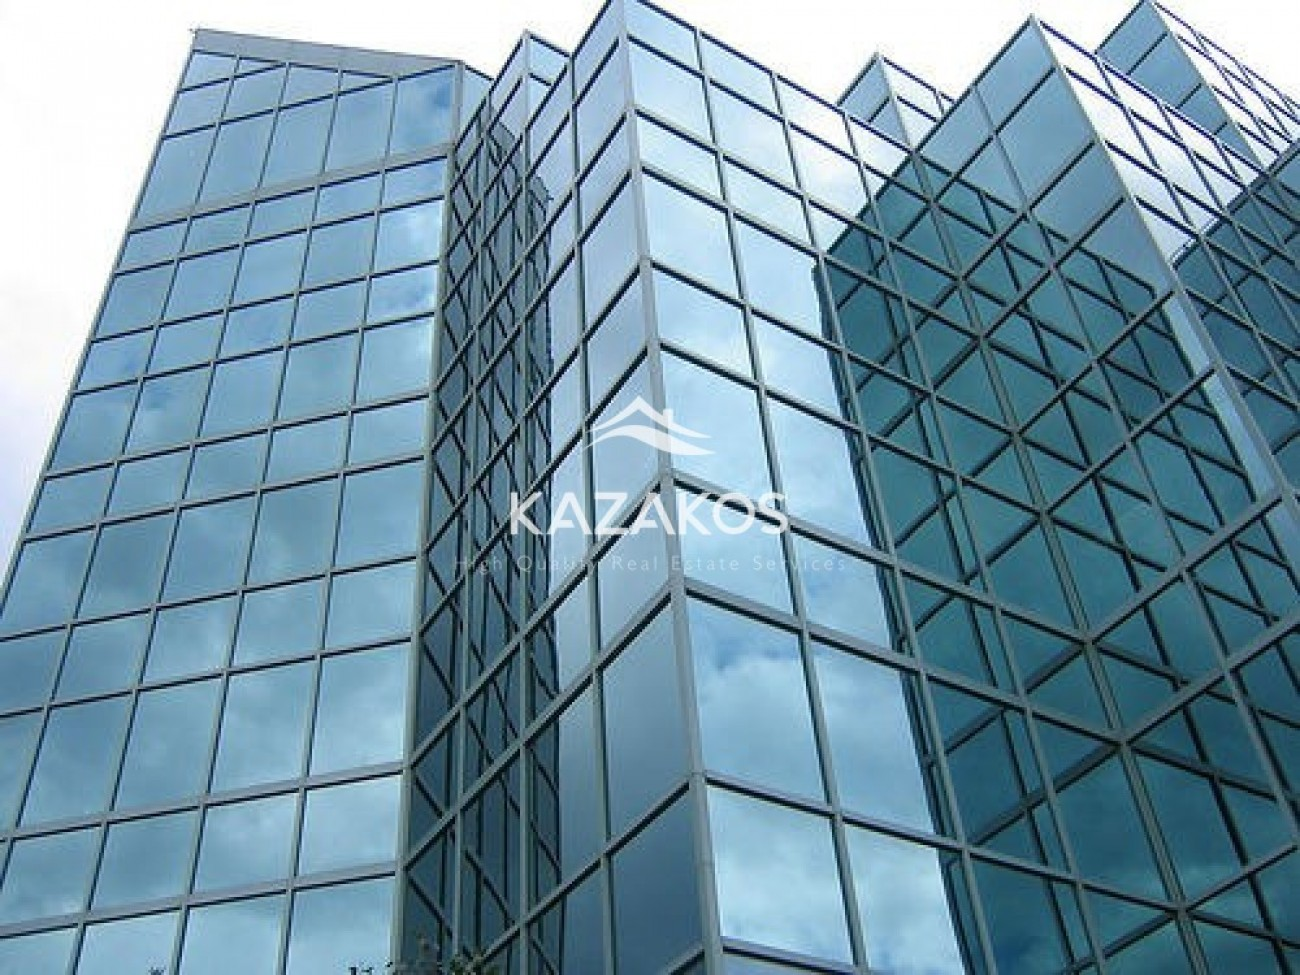 Building for Sale in Commercial Triangle- Plaka, Athens City Center, Greece